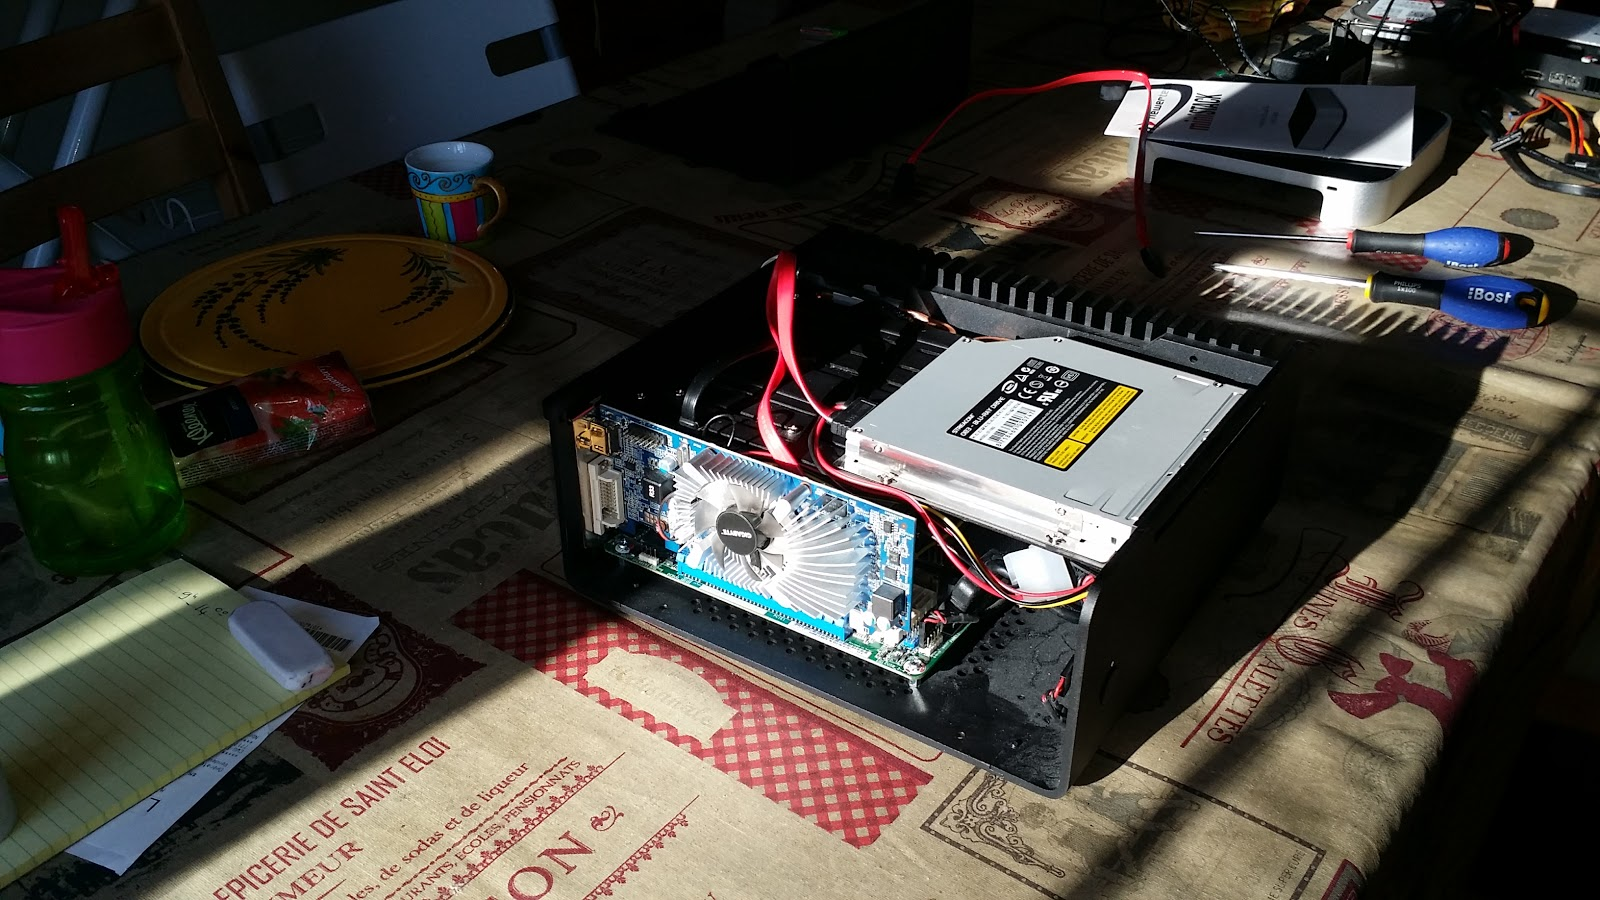 Coyote's Blog: The little server that could